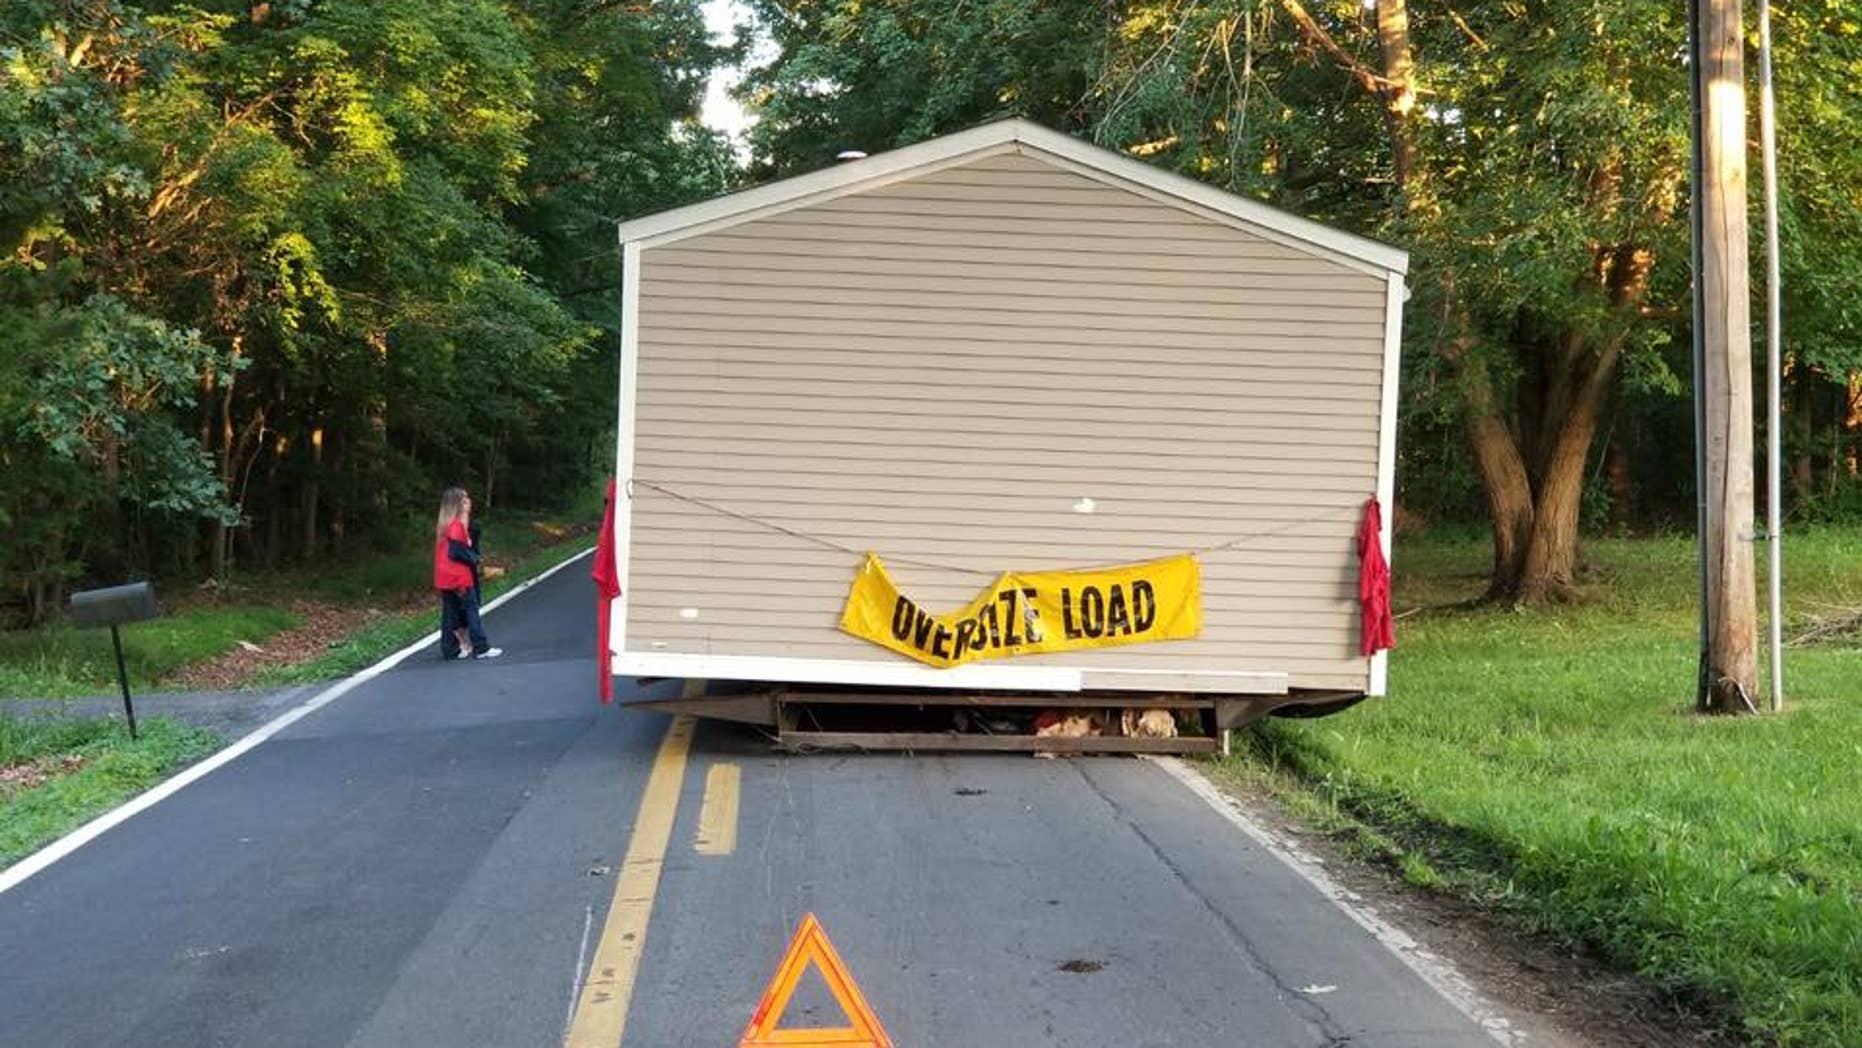 Investigators are trying to determine who abandoned a house on a street in Dover, Del.